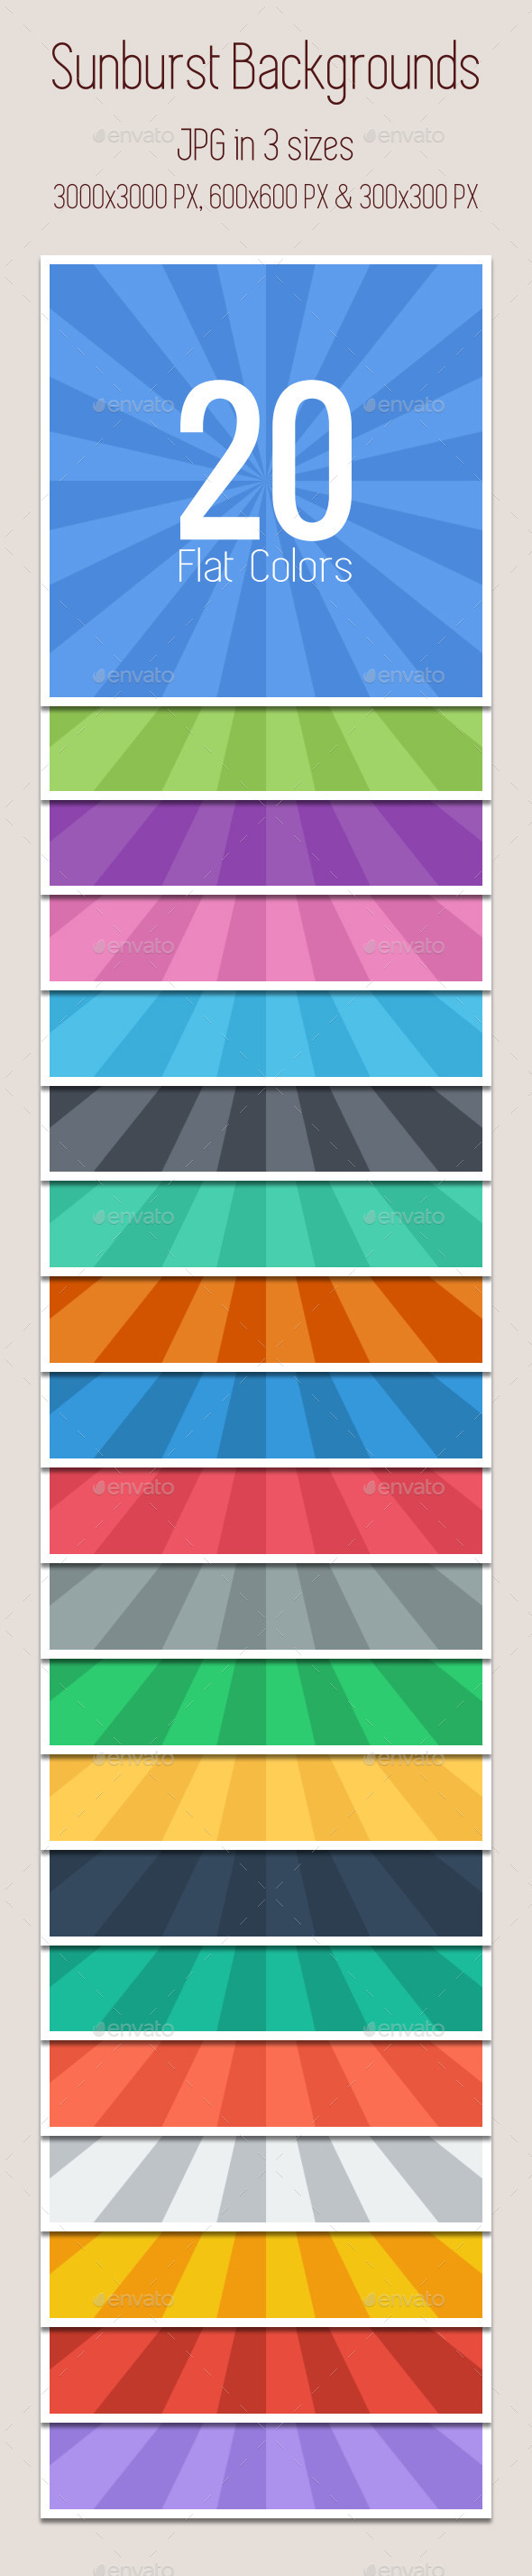 Sunburst Backgrounds (Flat Colors) x20 - Backgrounds Graphics